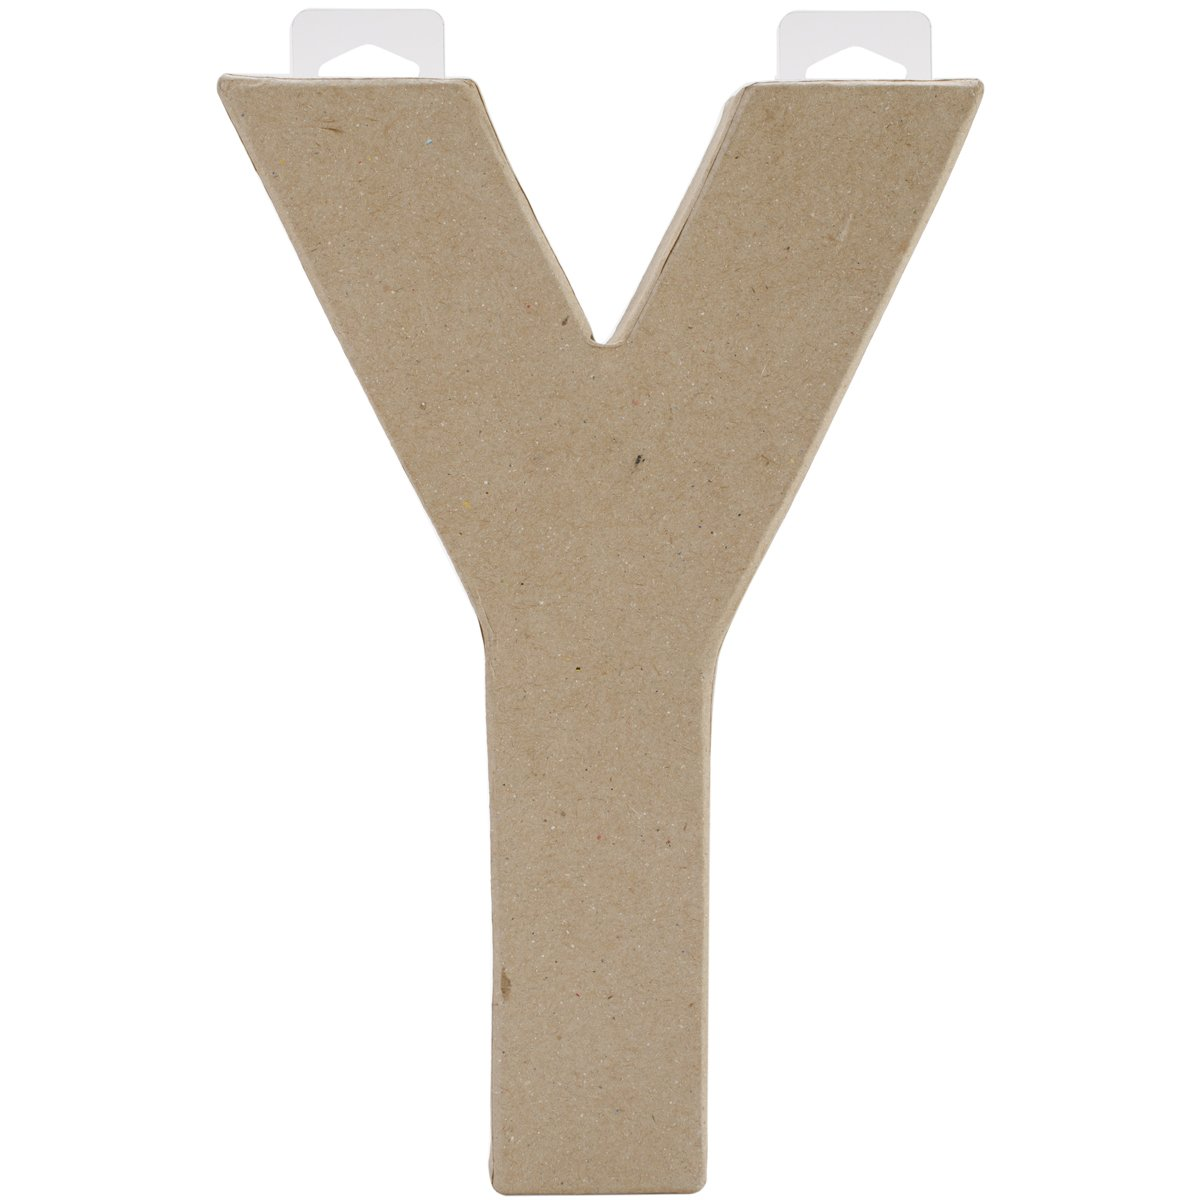 Darice Paper Mache Letter - Y - 8 x 5.5 x 1 inches 2862-Y